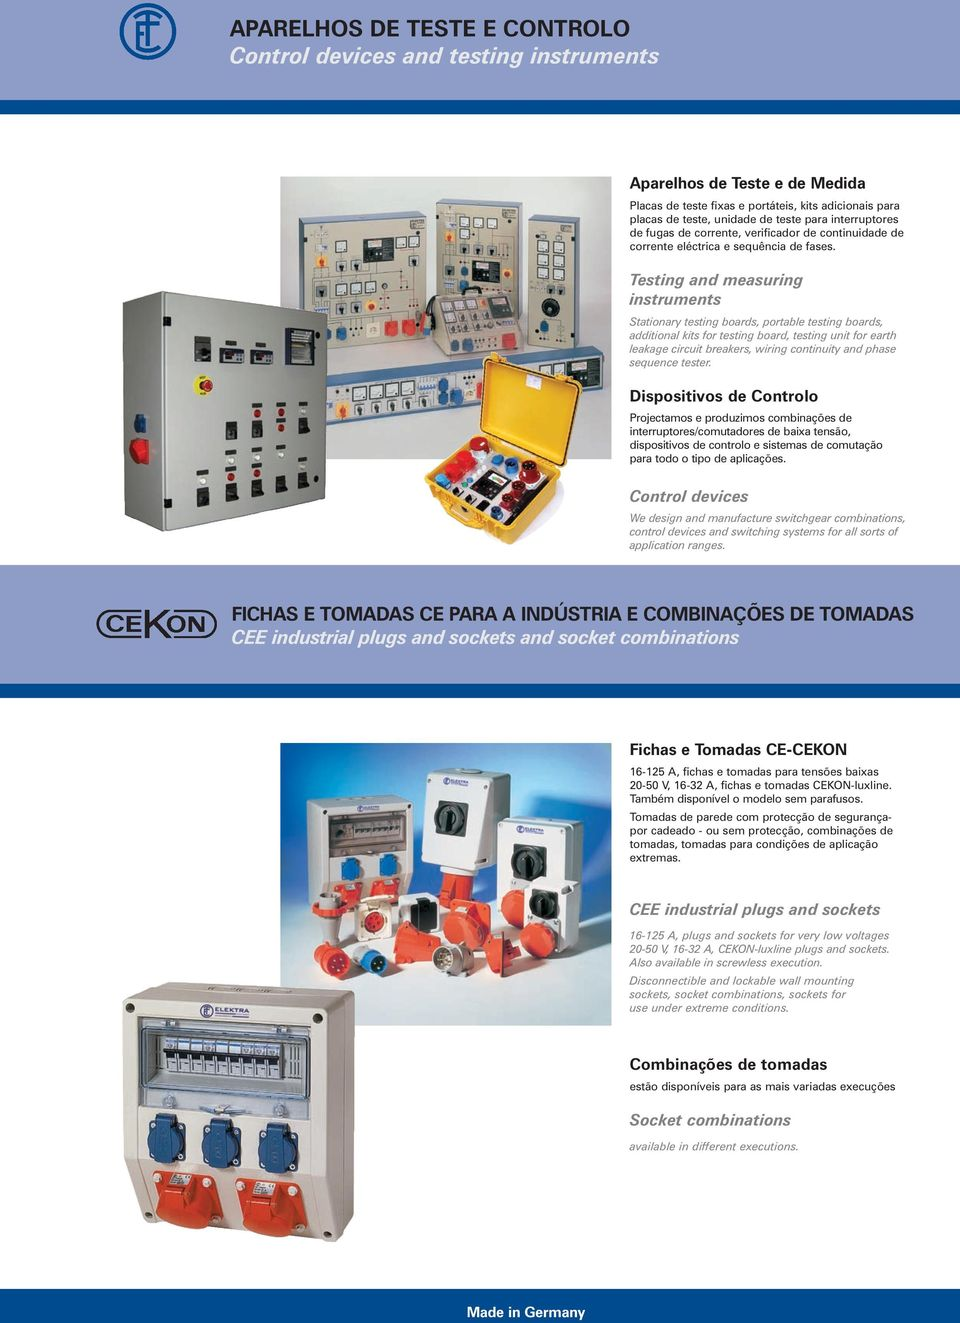 Testing and measuring instruments Stationary testing boards, portable testing boards, additional kits for testing board, testing unit for earth leakage circuit breakers, wiring continuity and phase